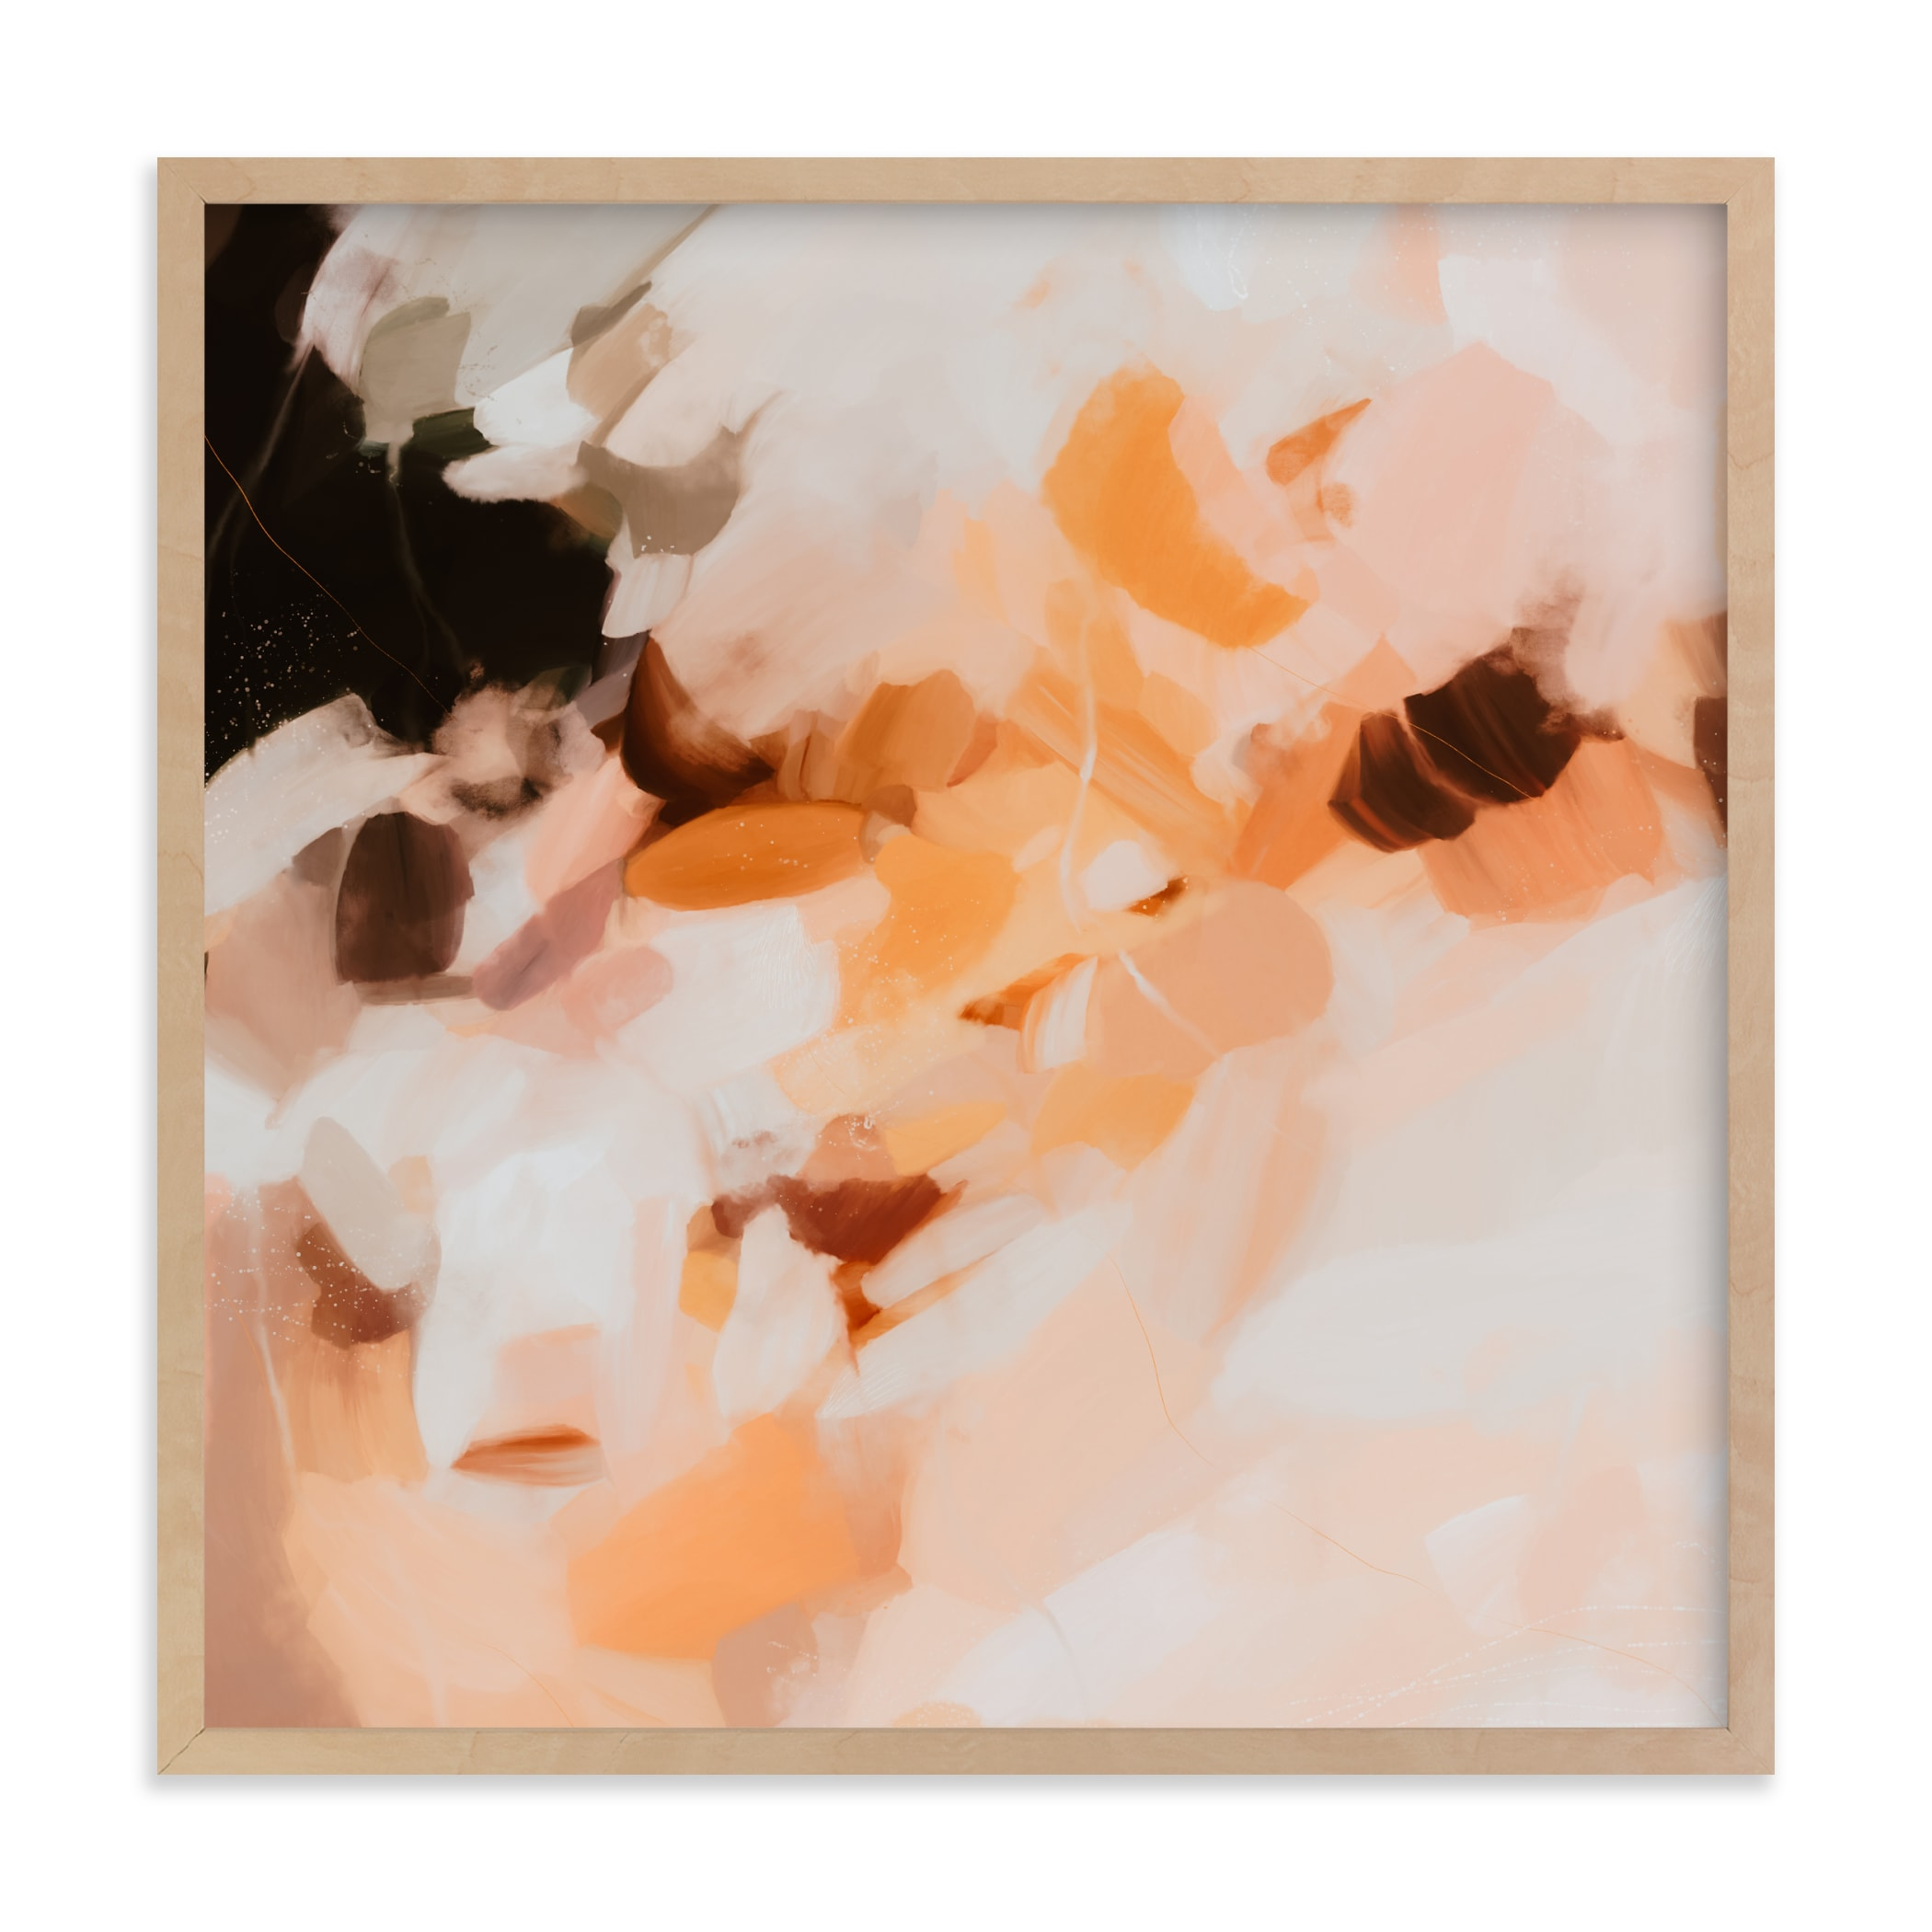 This is a brown art by Parima Studio called Emberley.